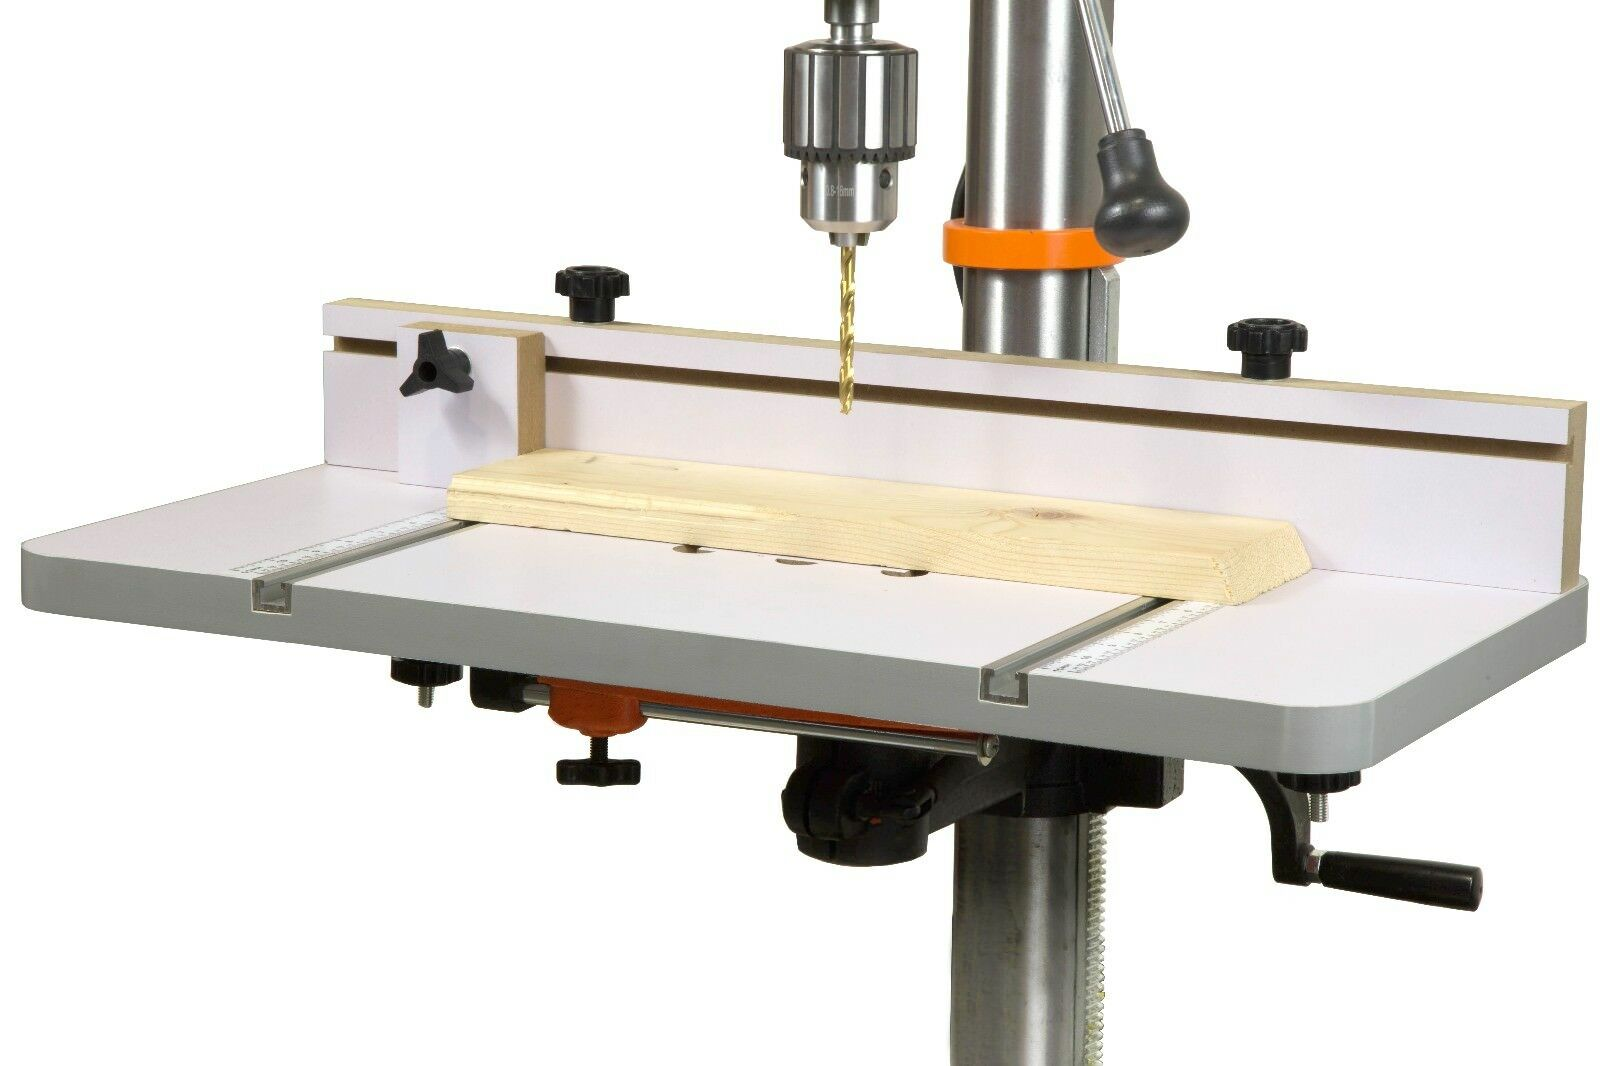 WEN DPA2412T 24 in. x 12 in. Drill Press Table with an Adjus